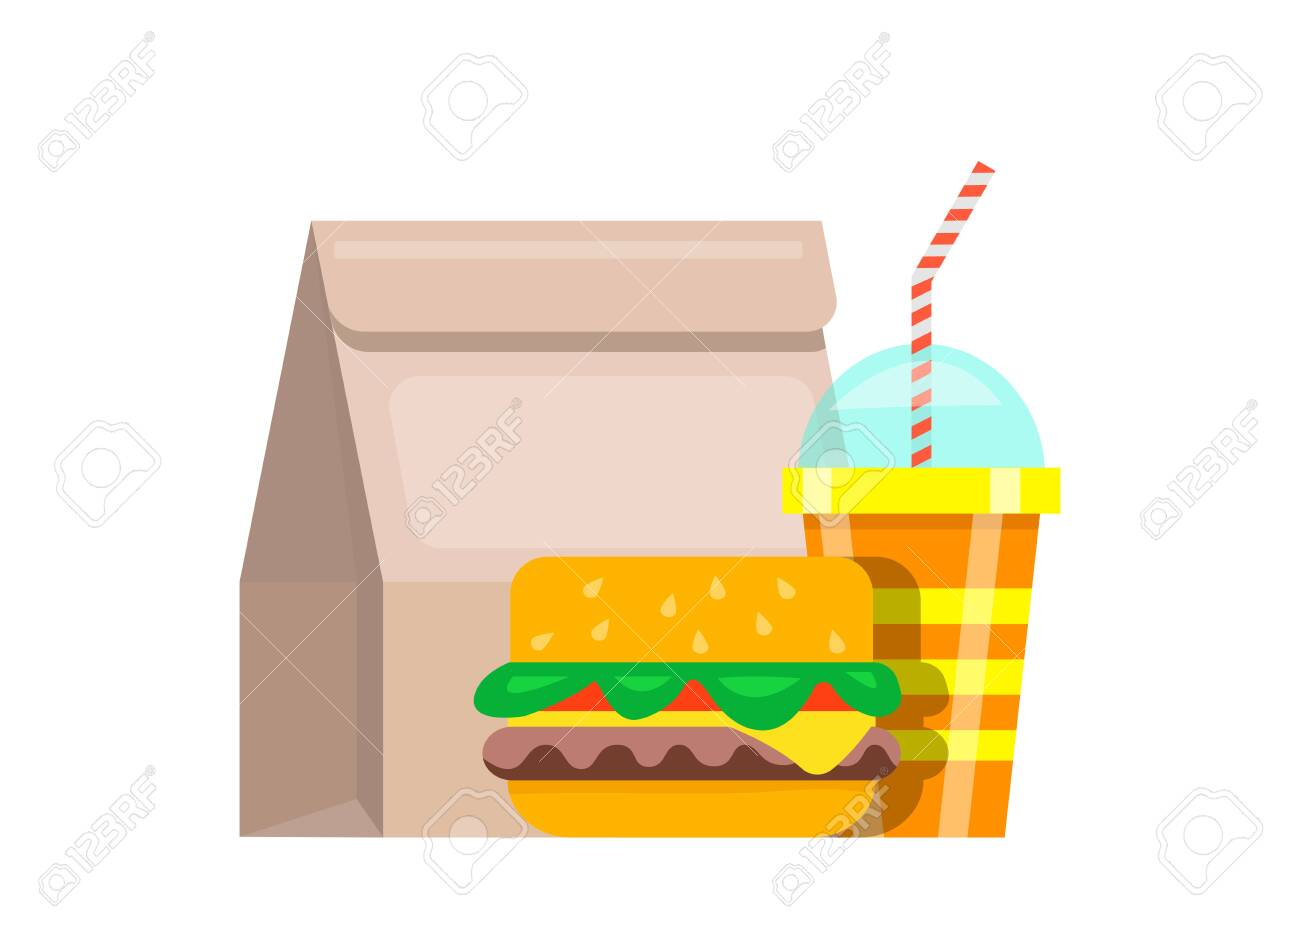 Paper bag lunch fast food. Bag food juicy fresh hamburger striped glass soda with straws nutritious fast food restaurant quick lunch snack. Appetizing vector clipart. - 147108373